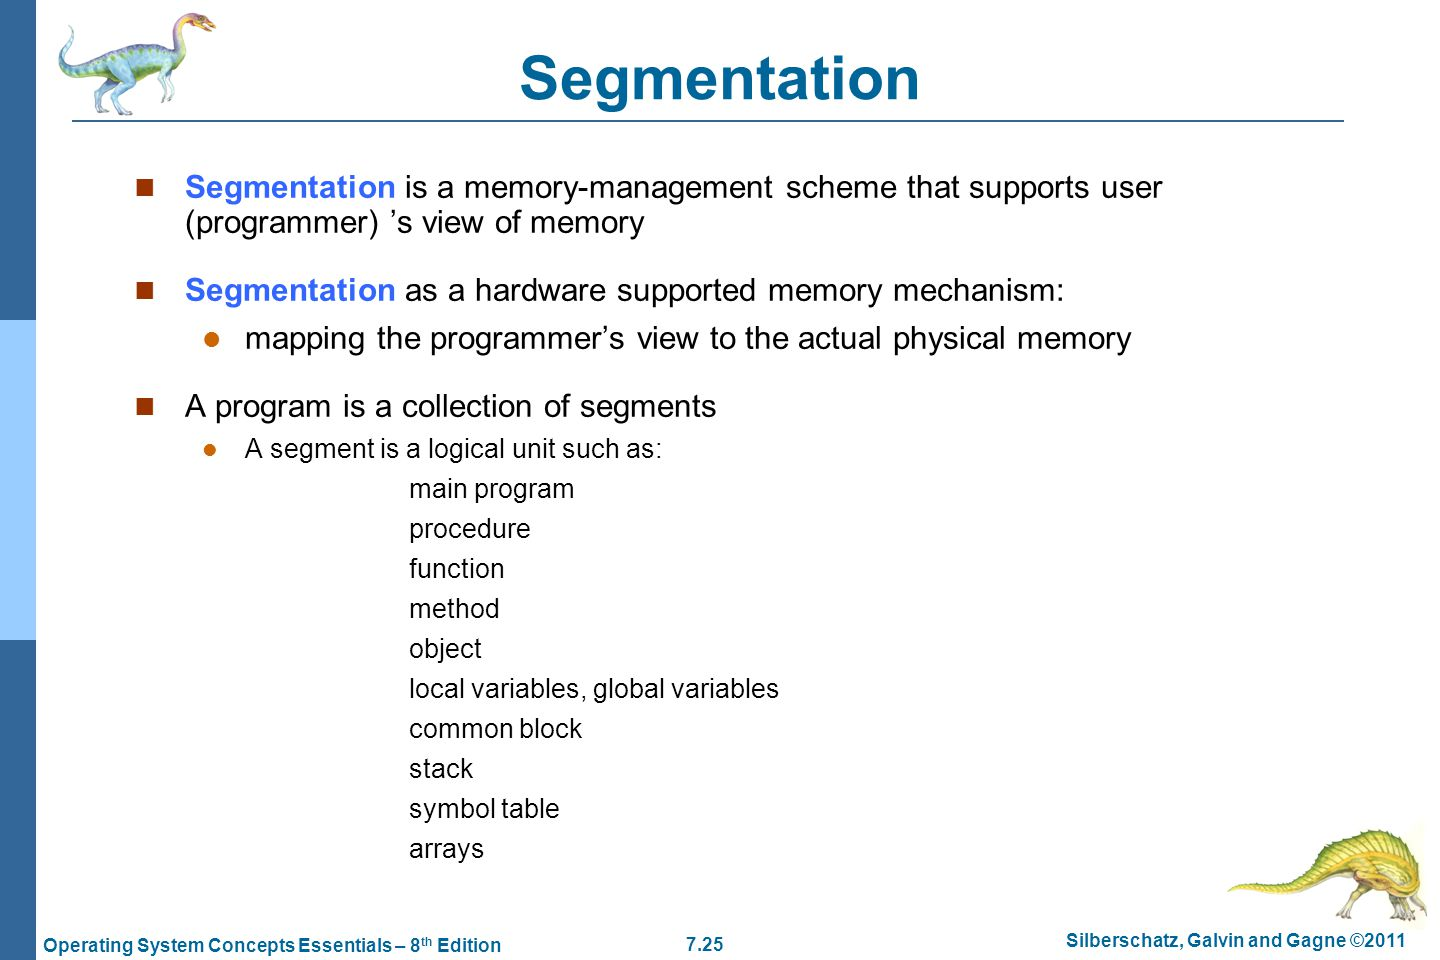 7.25 Silberschatz, Galvin and Gagne ©2011 Operating System Concepts Essentials – 8 th Edition Segmentation Segmentation is a memory-management scheme that supports user (programmer) 's view of memory Segmentation as a hardware supported memory mechanism: mapping the programmer's view to the actual physical memory A program is a collection of segments A segment is a logical unit such as: main program procedure function method object local variables, global variables common block stack symbol table arrays